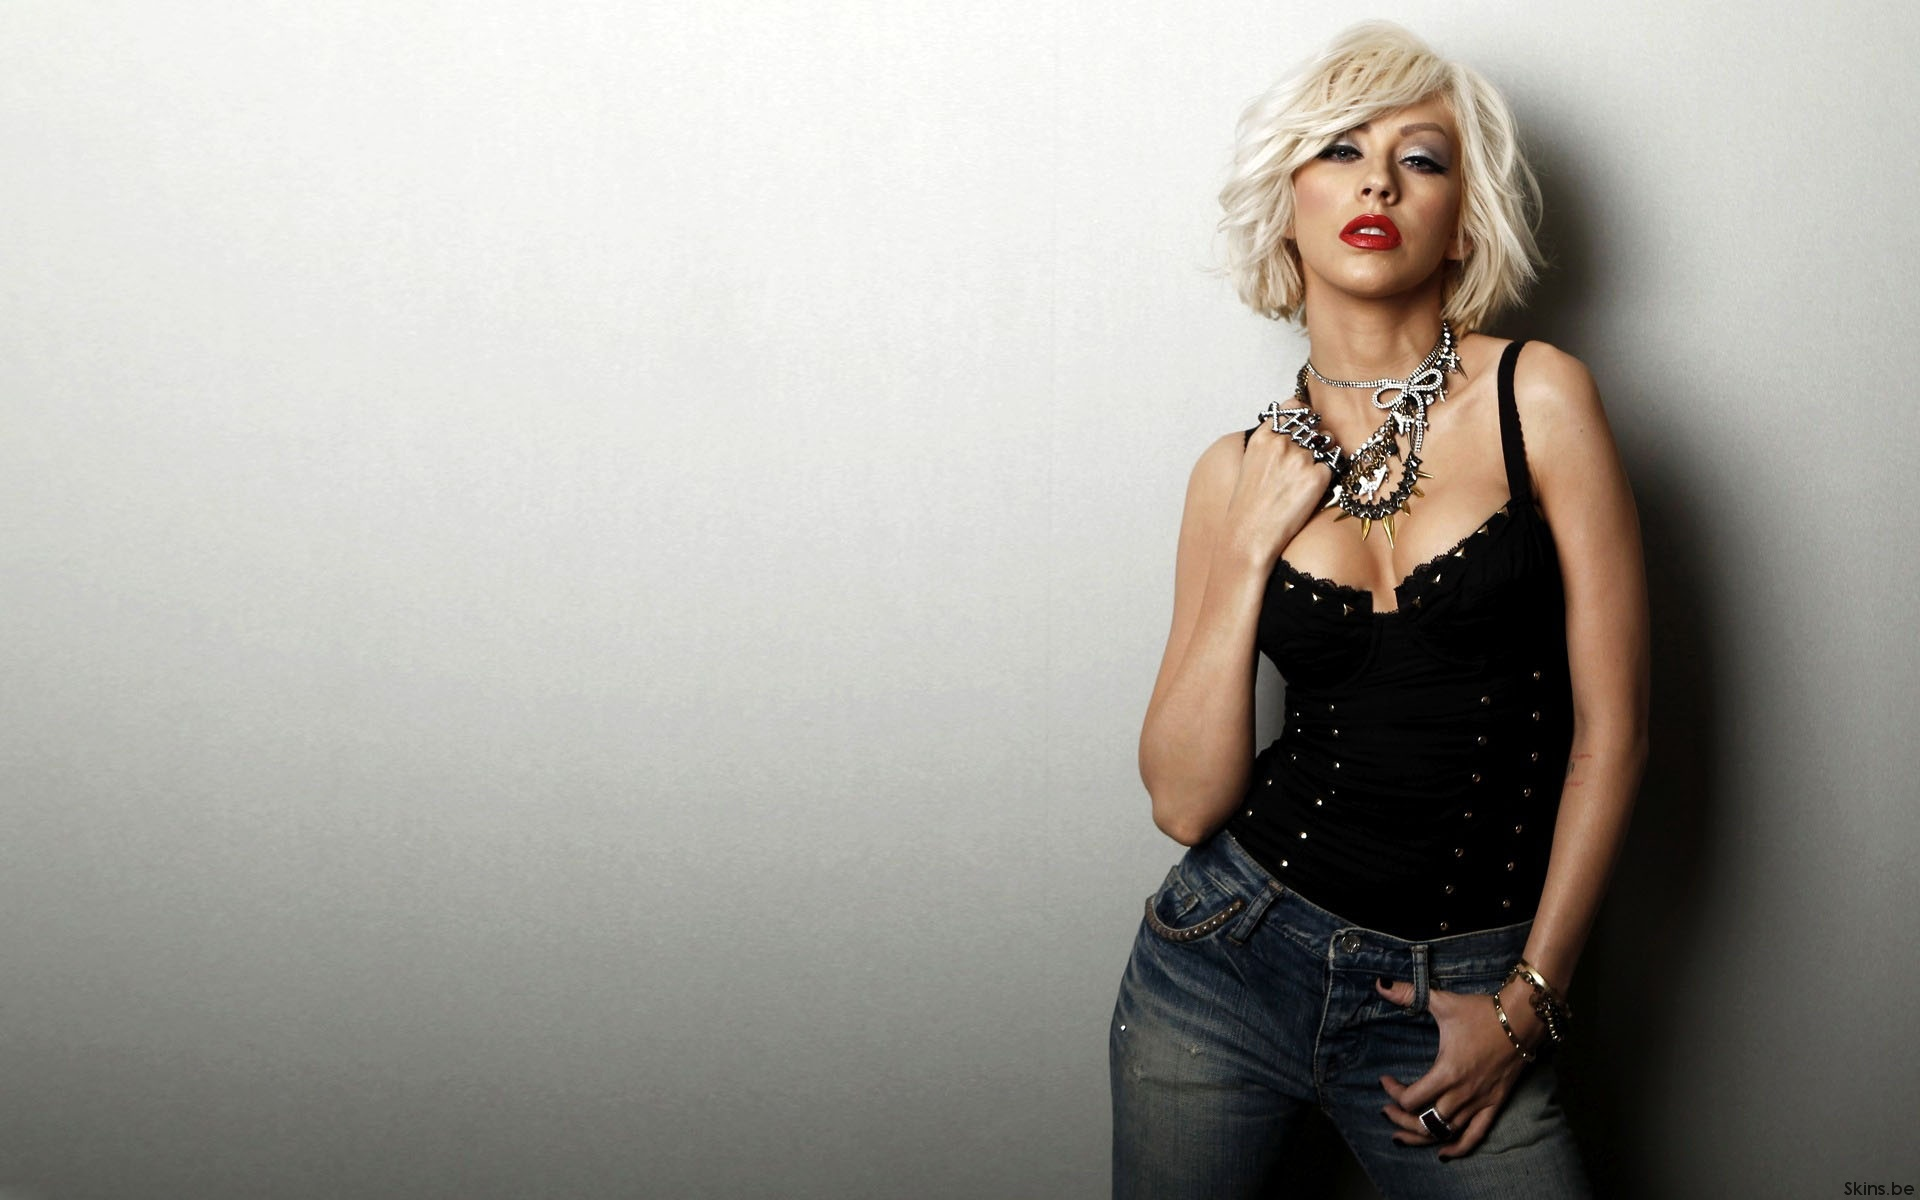 christina aguilera wallpapers mac desktop wallpaper 1920x1200 1920x1200